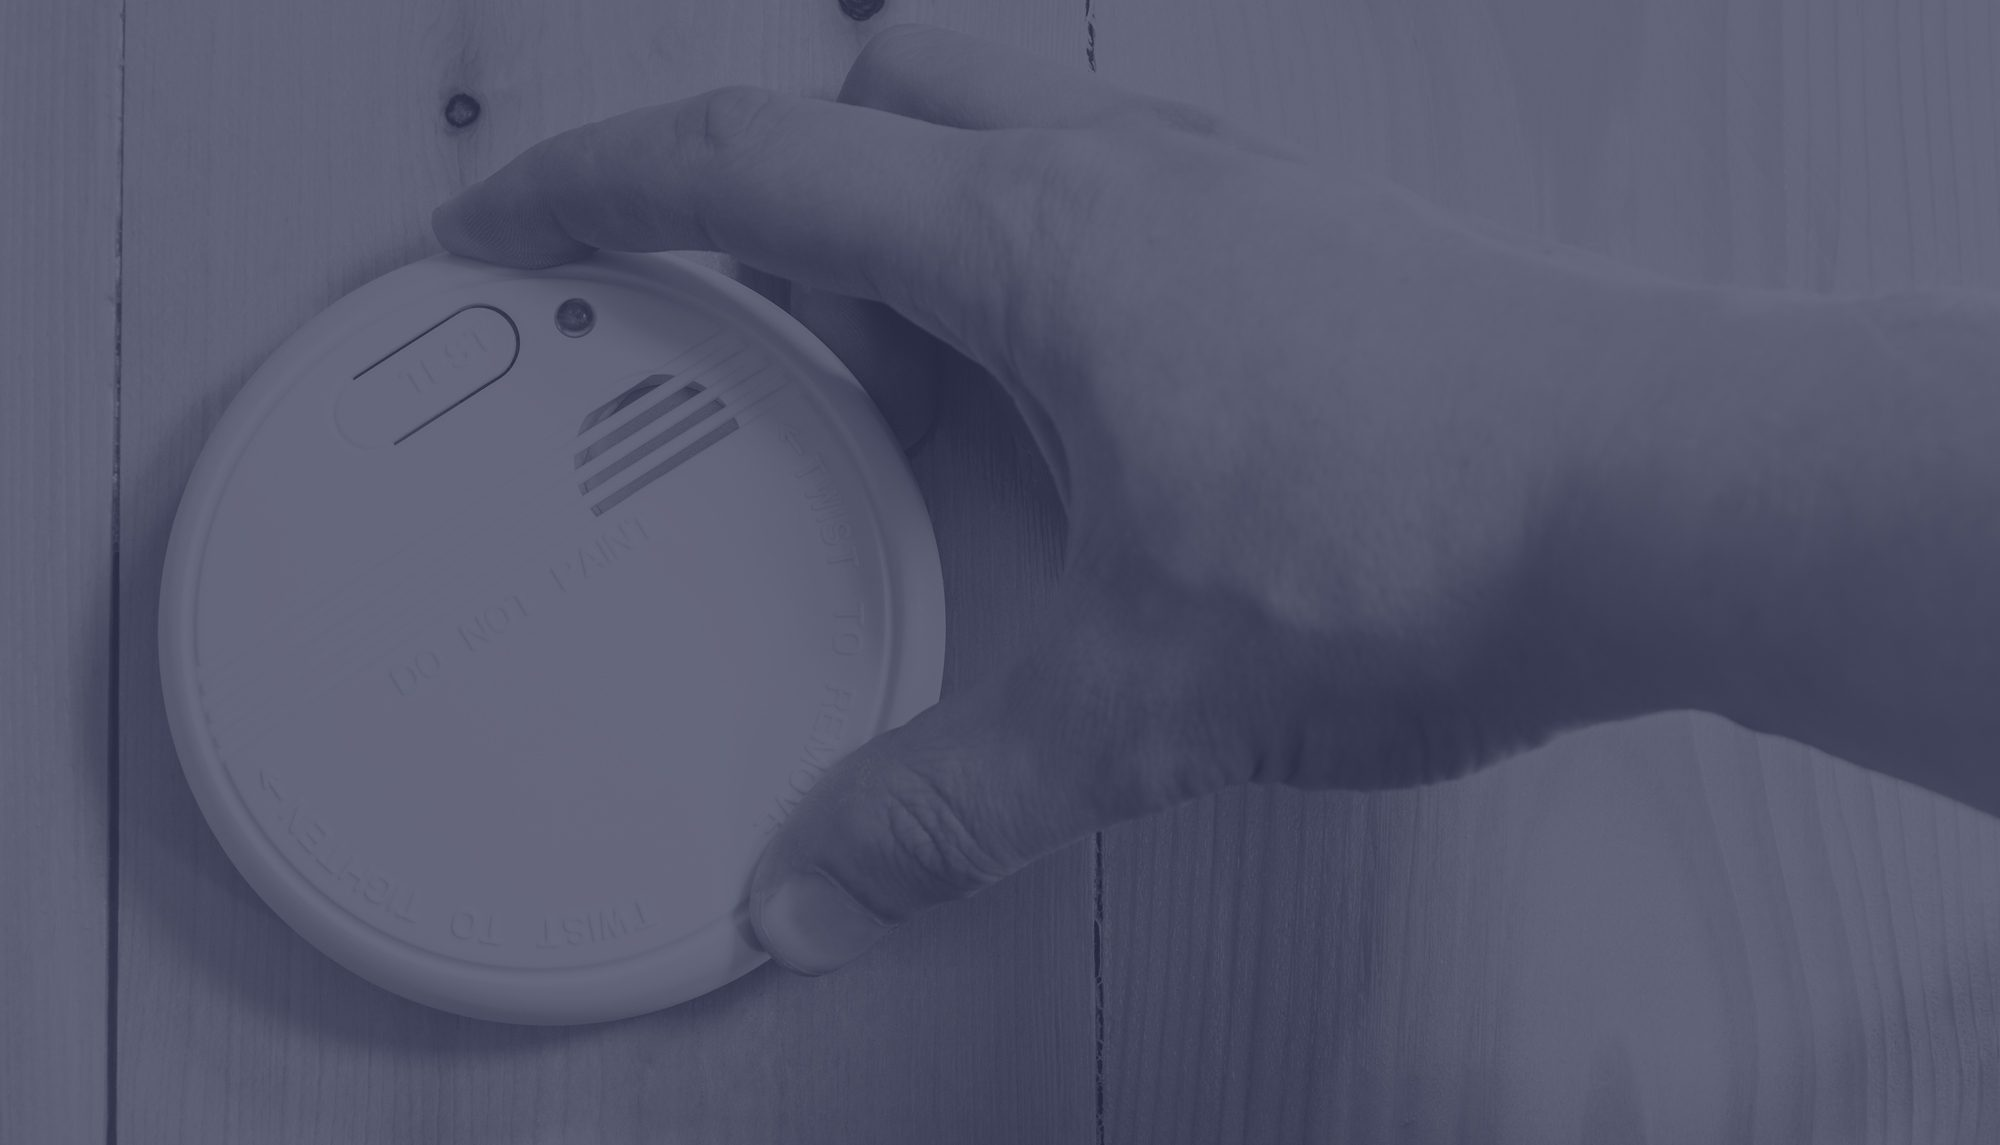 Landlord Gas Safety Certificates & Carbon Monoxide detectors